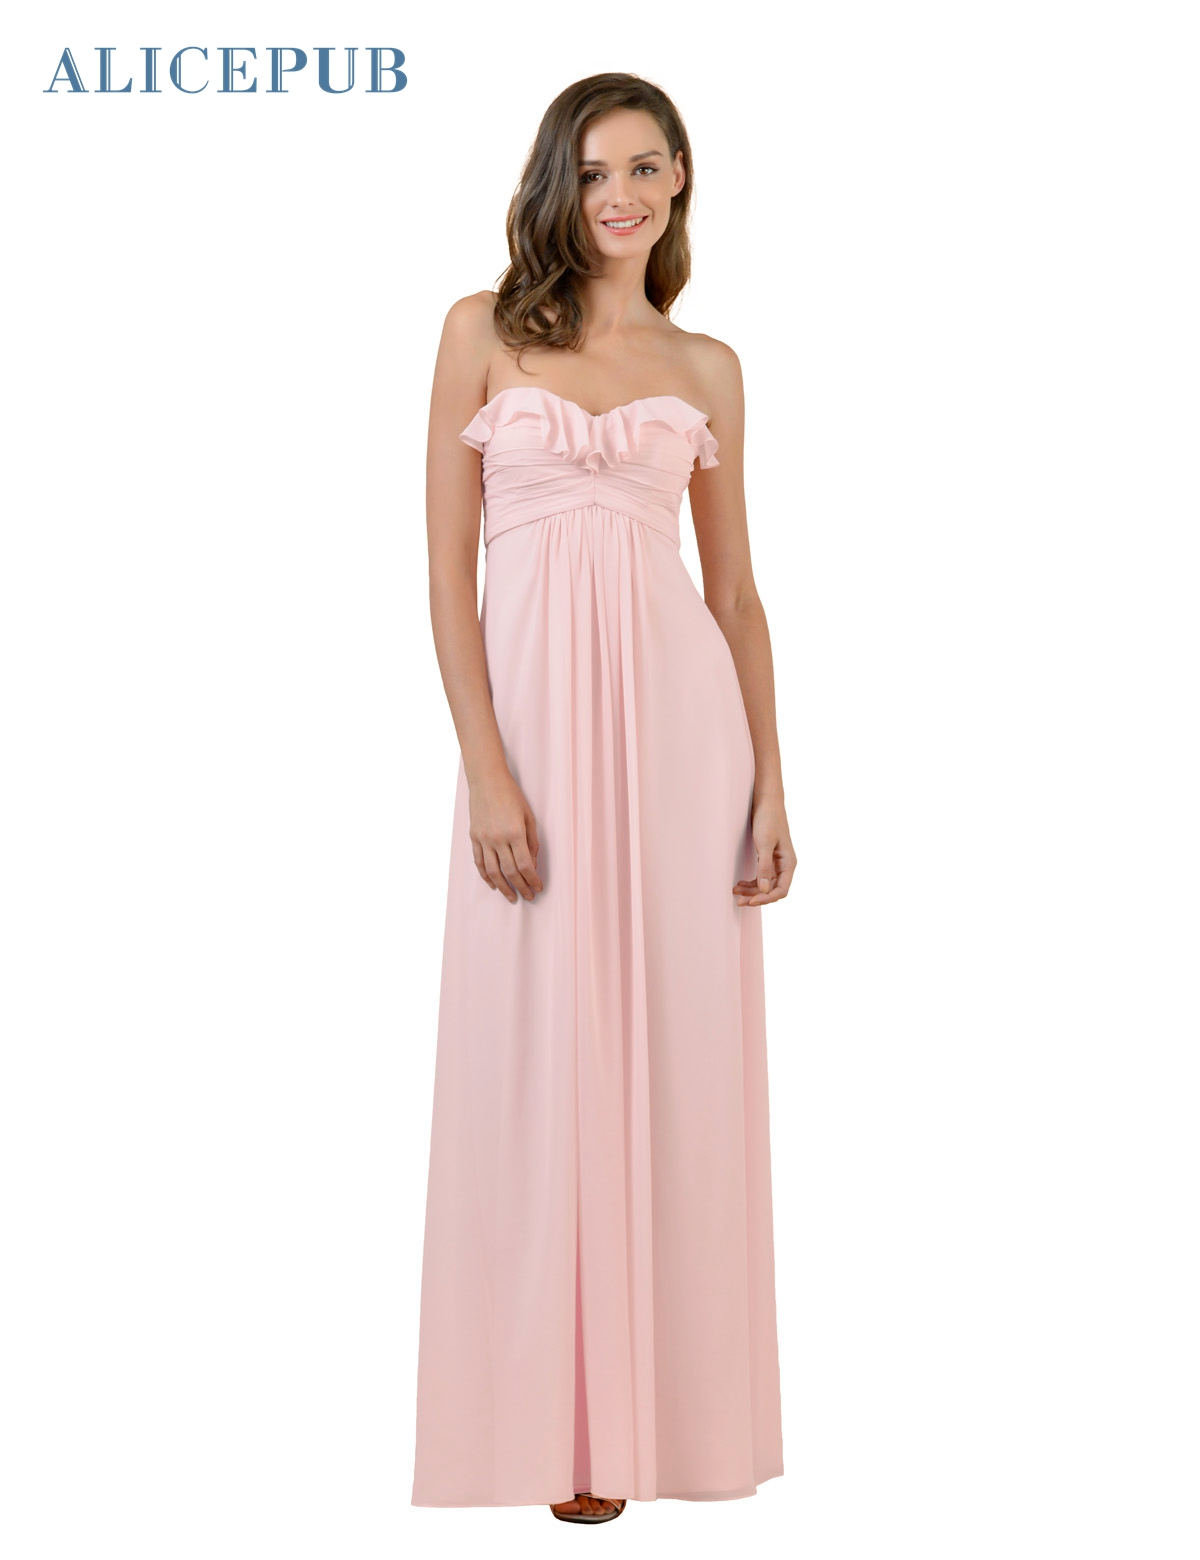 High quality colors bridesmaid dresses buy cheap colors bridesmaid alicepub sweetheart bridesmaid dresses long chiffon ruffles prom party ball gowns strapless multi colors free shipping ombrellifo Images